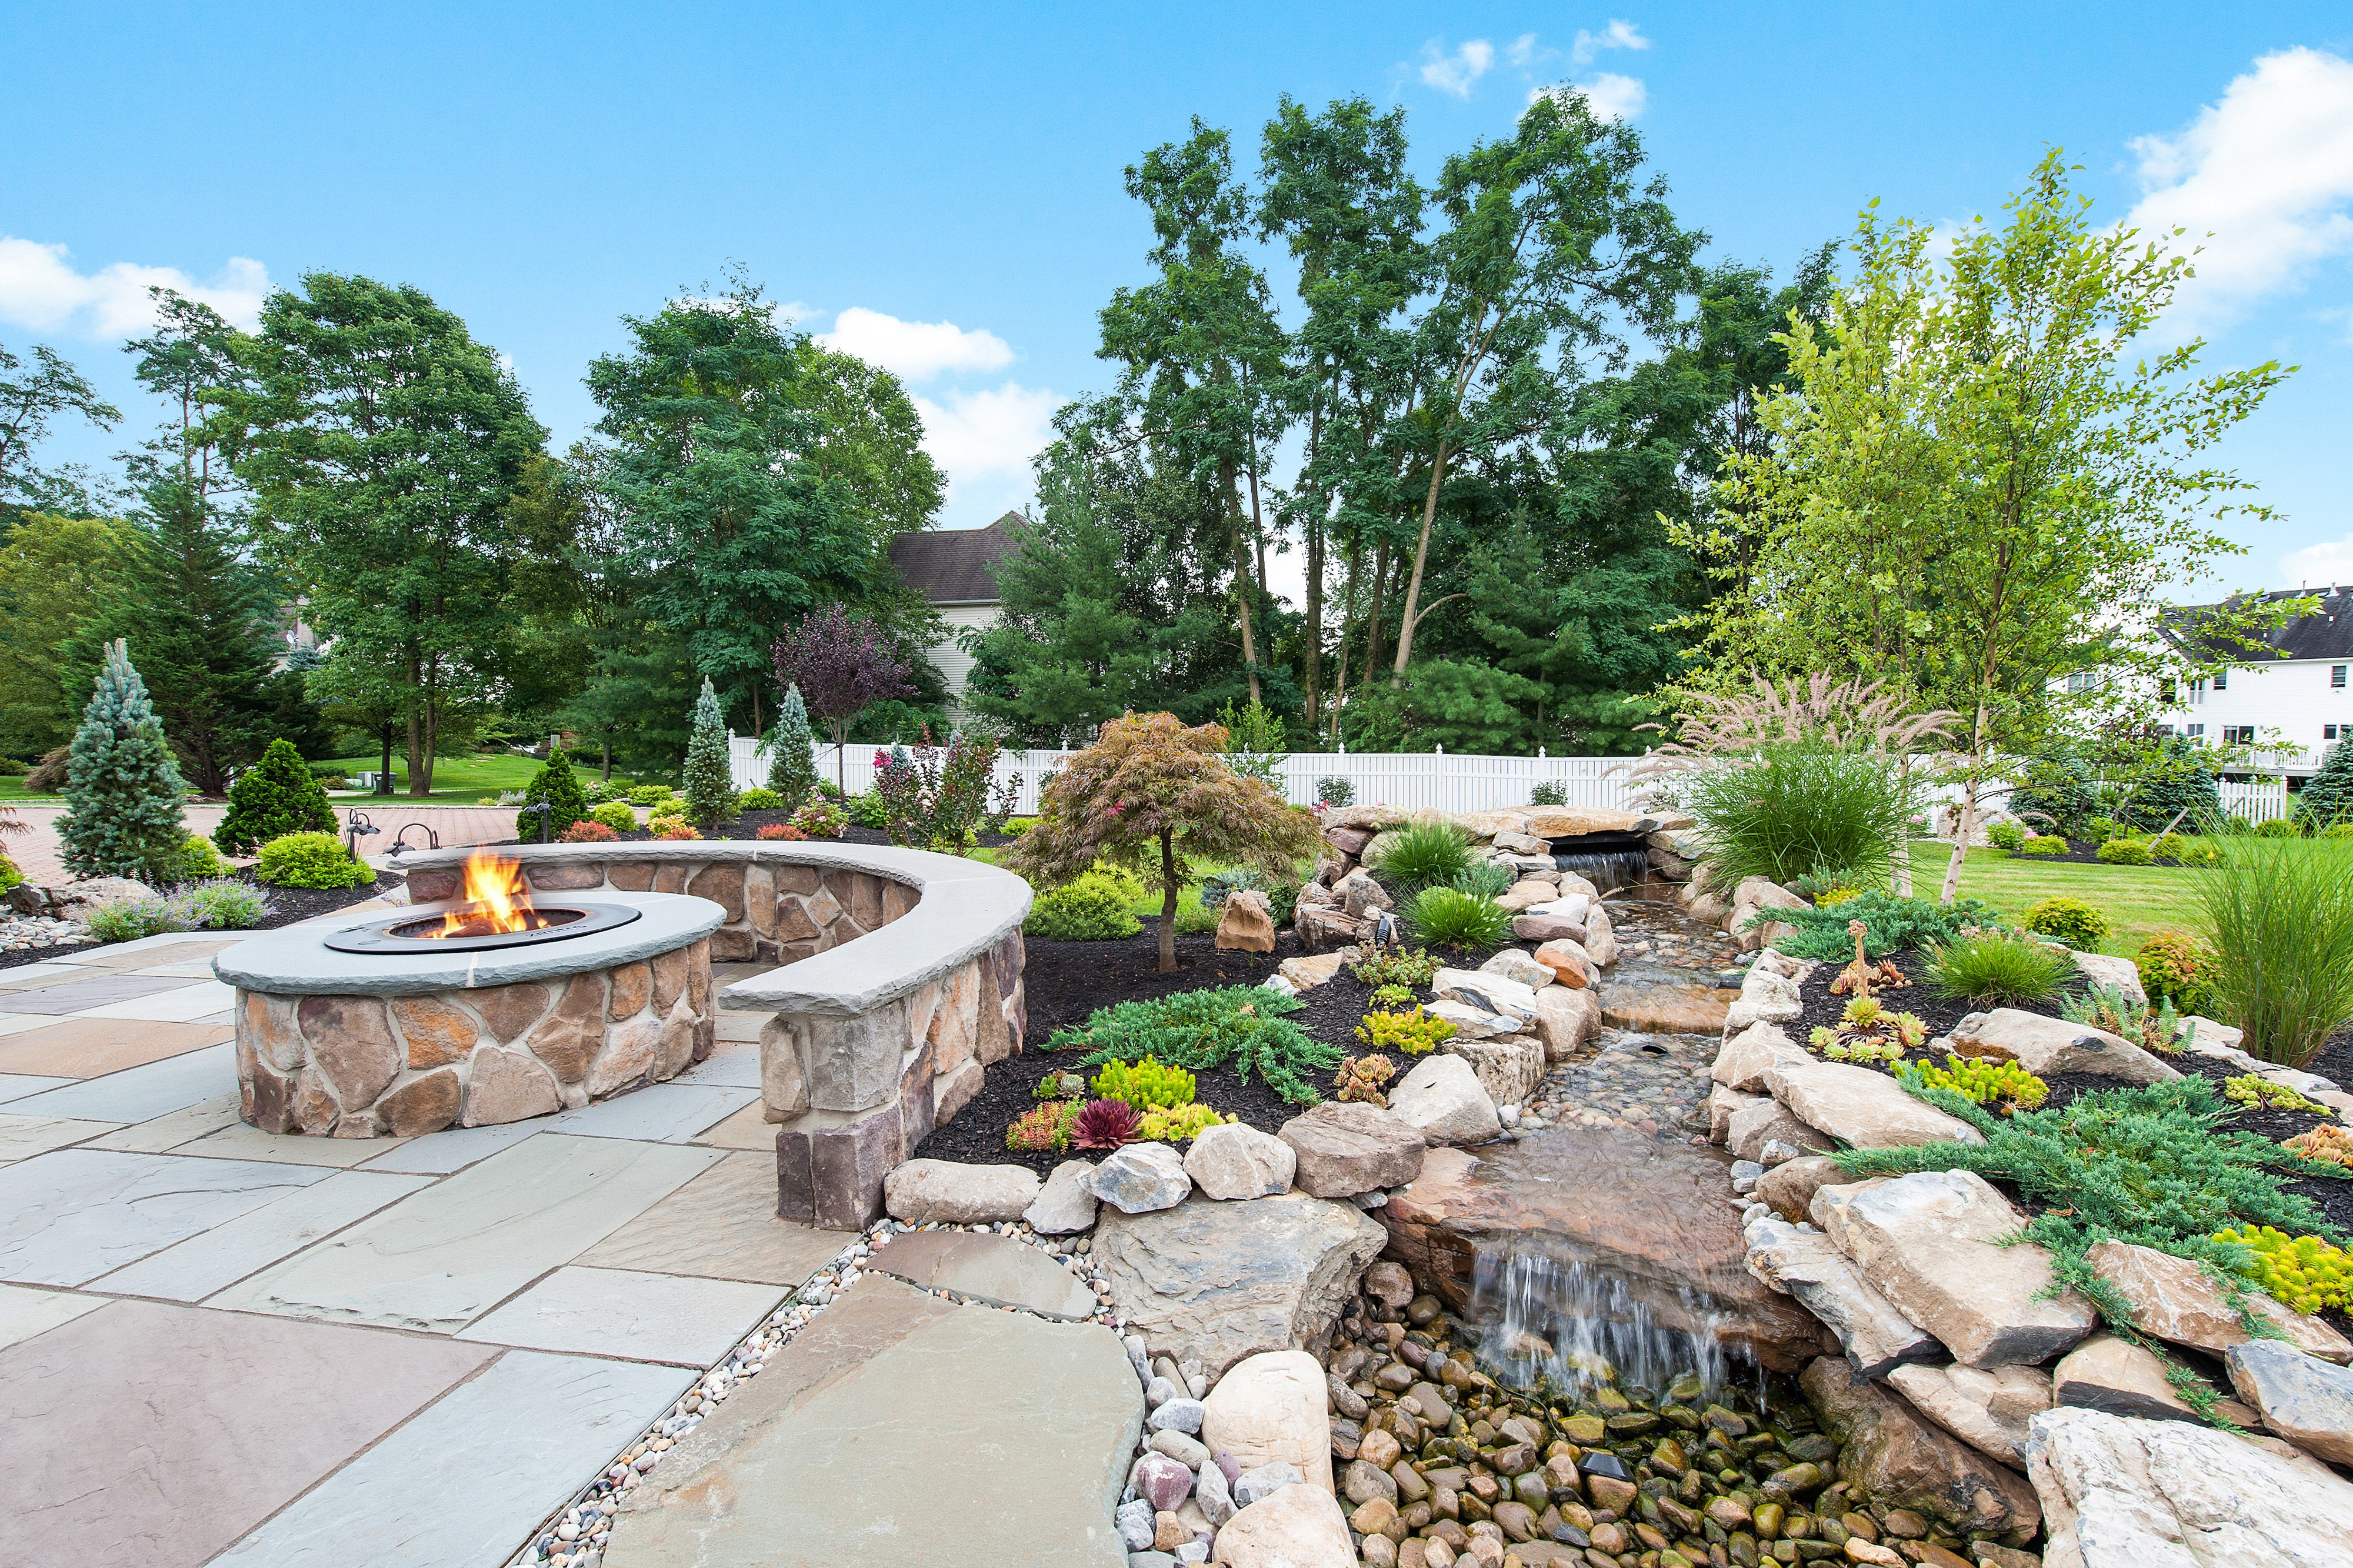 How to Choose a Landscape & Hardscape Contractor